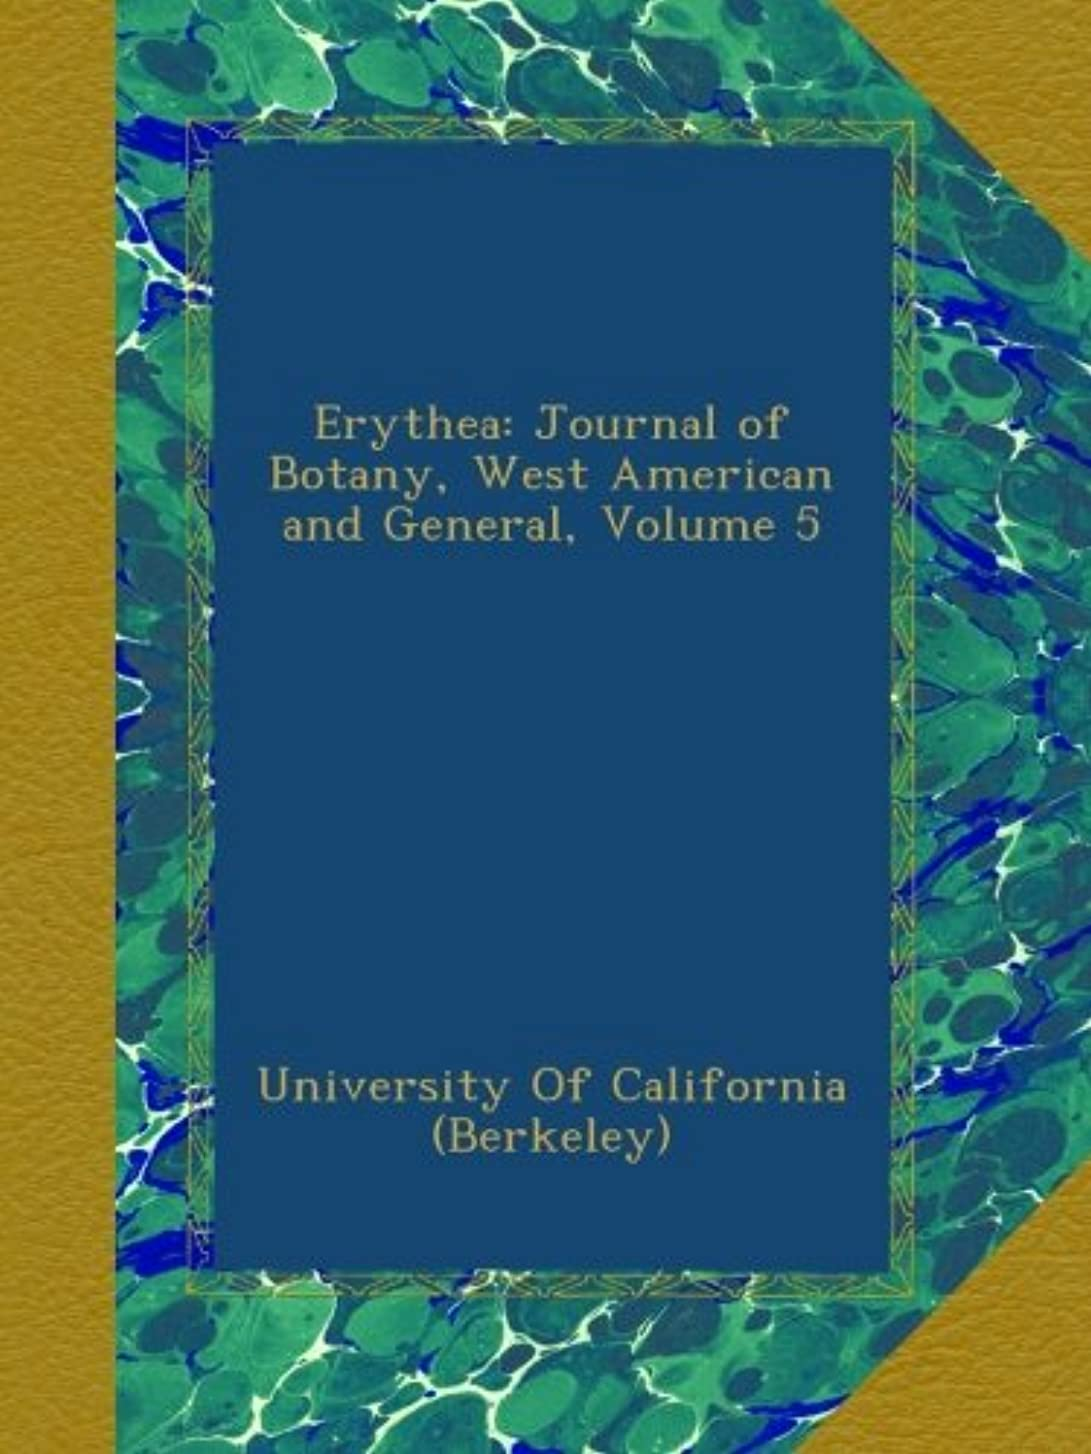 Erythea: Journal of Botany, West American and General, Volume 5